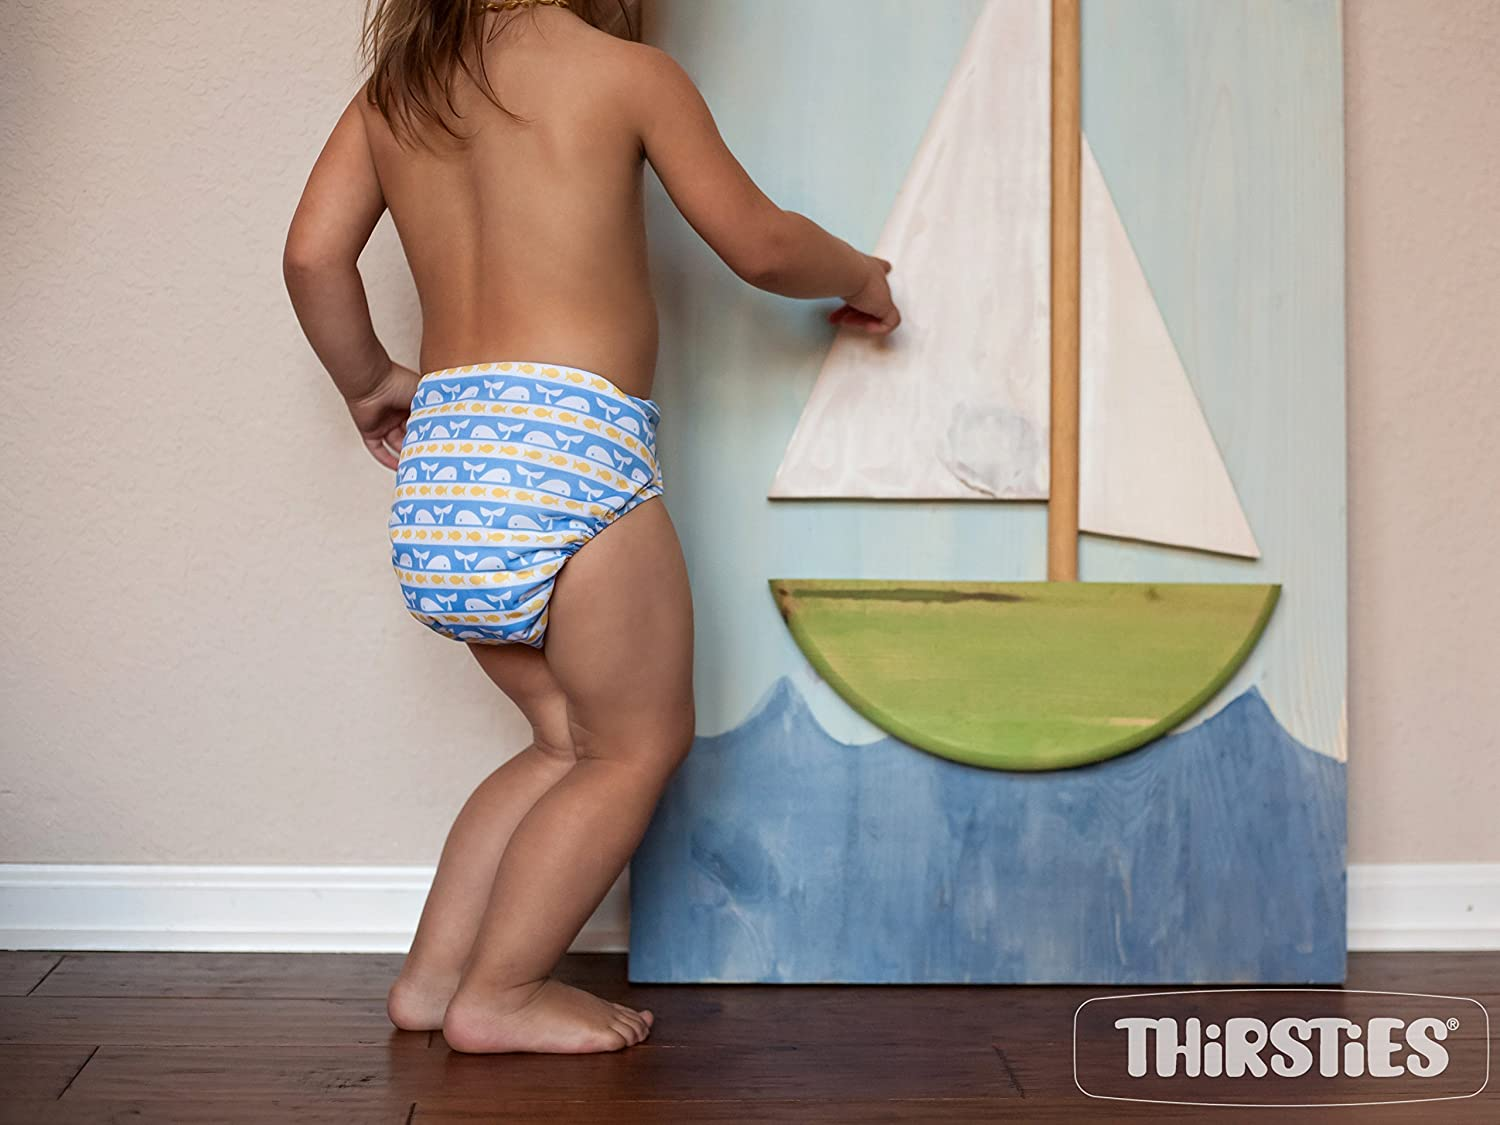 Thirsties Snap All in One Diaper, Aqua, One Size TOSAIOSA